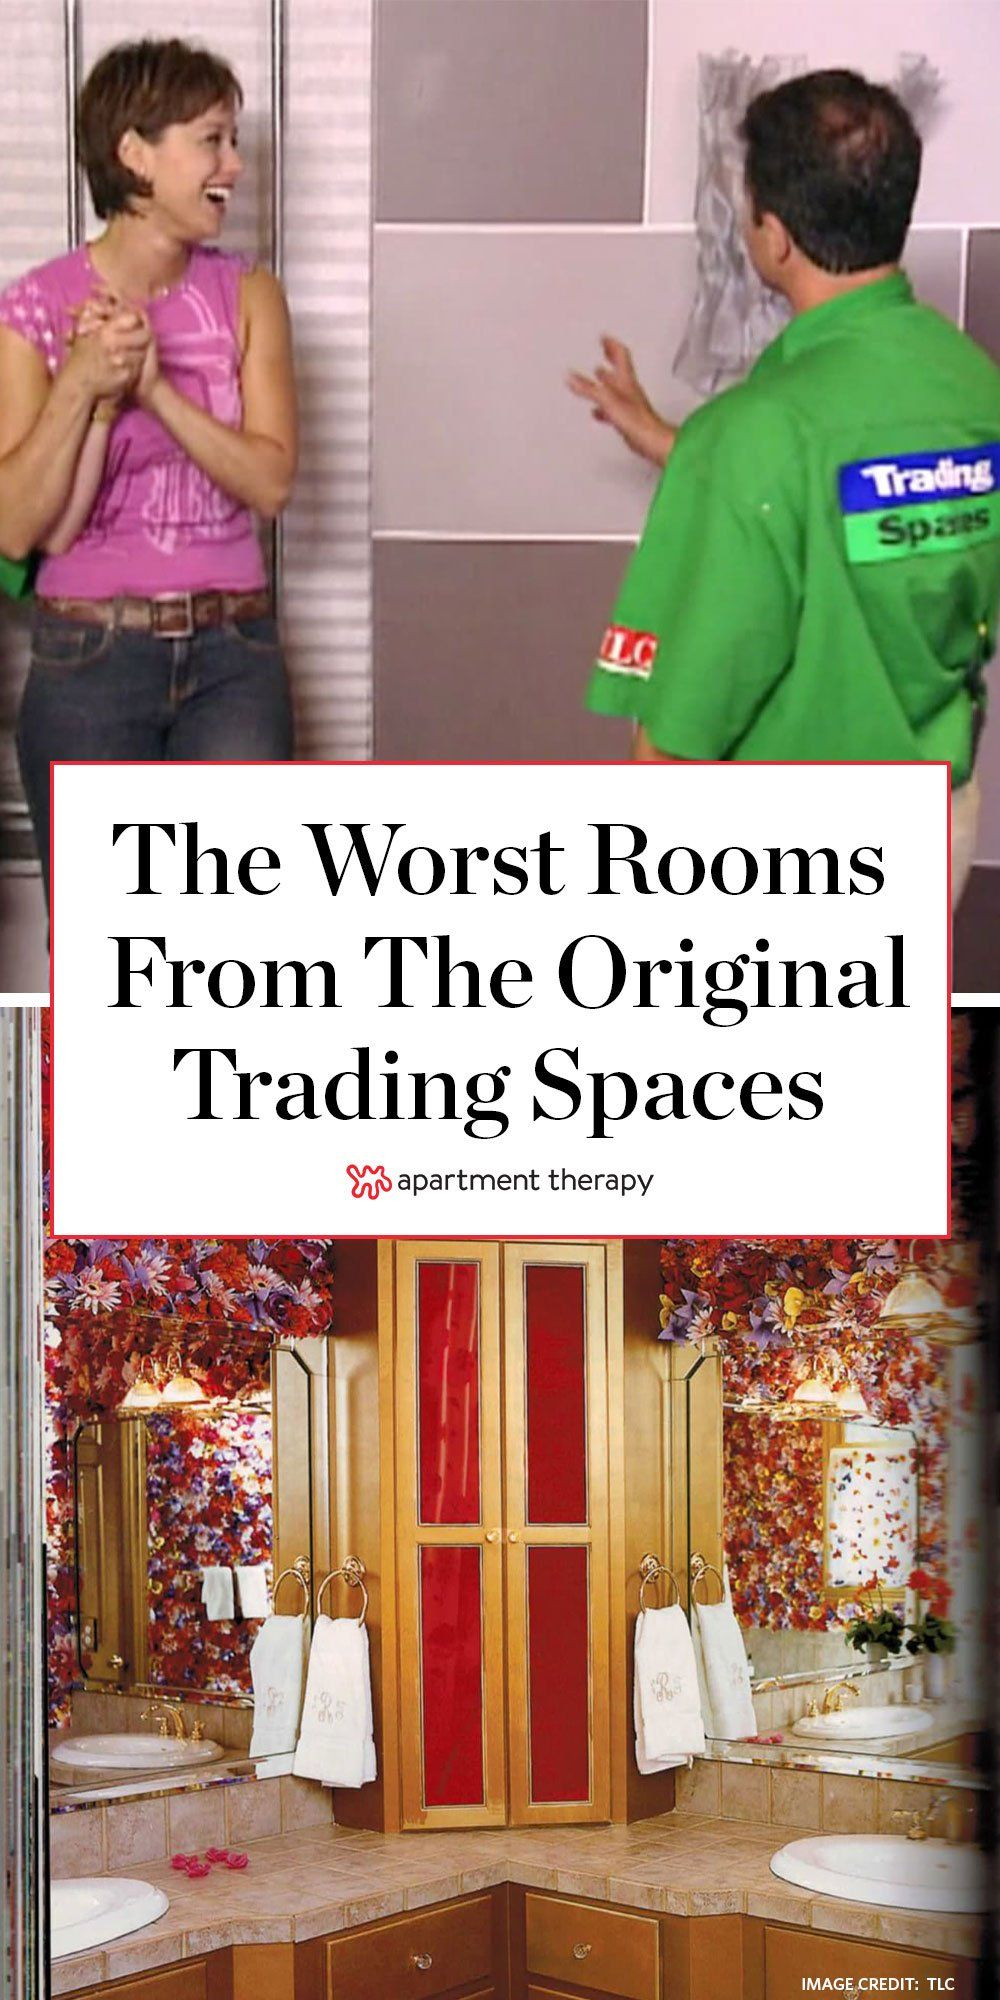 The Best Worst Rooms From The Original Trading Spaces In 2020 Bad Room Design Room Design Room